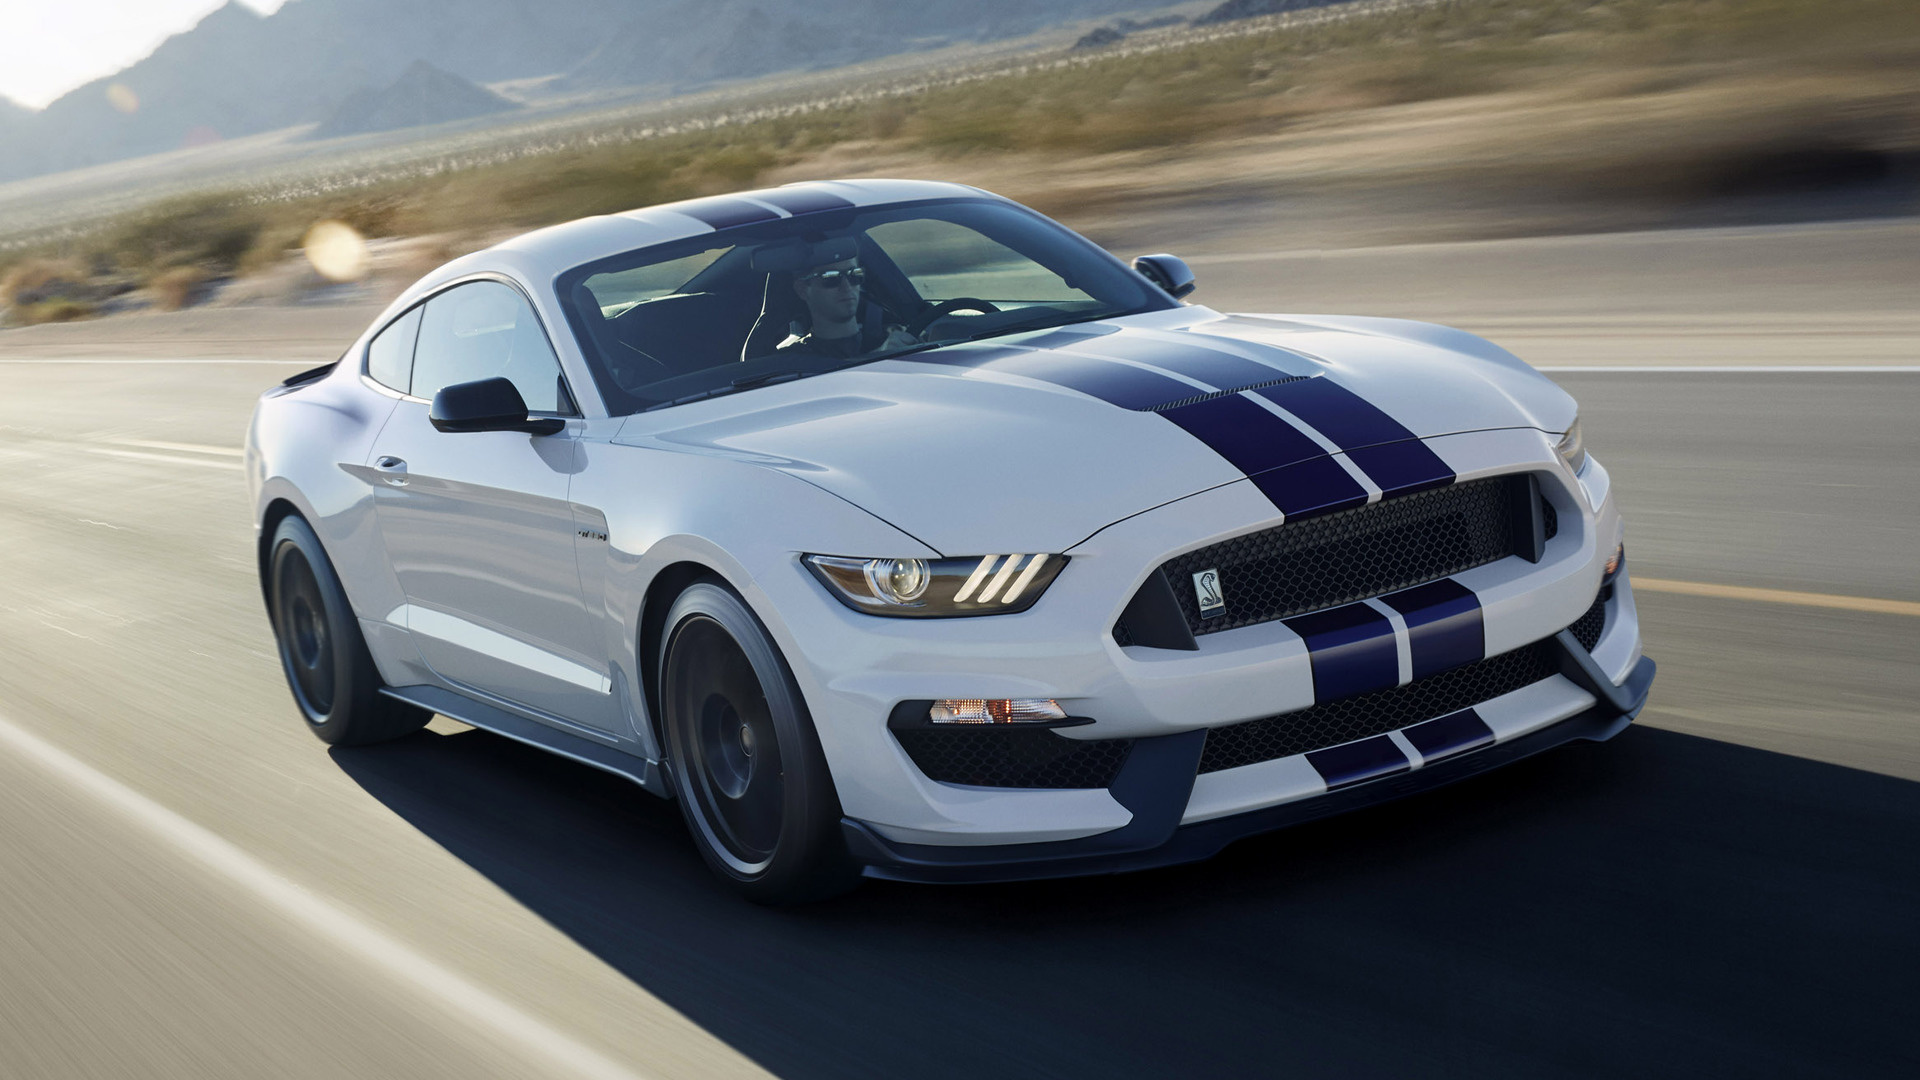 Shelby GT350 Mustang 2016 Wallpapers and HD Images 1920x1080